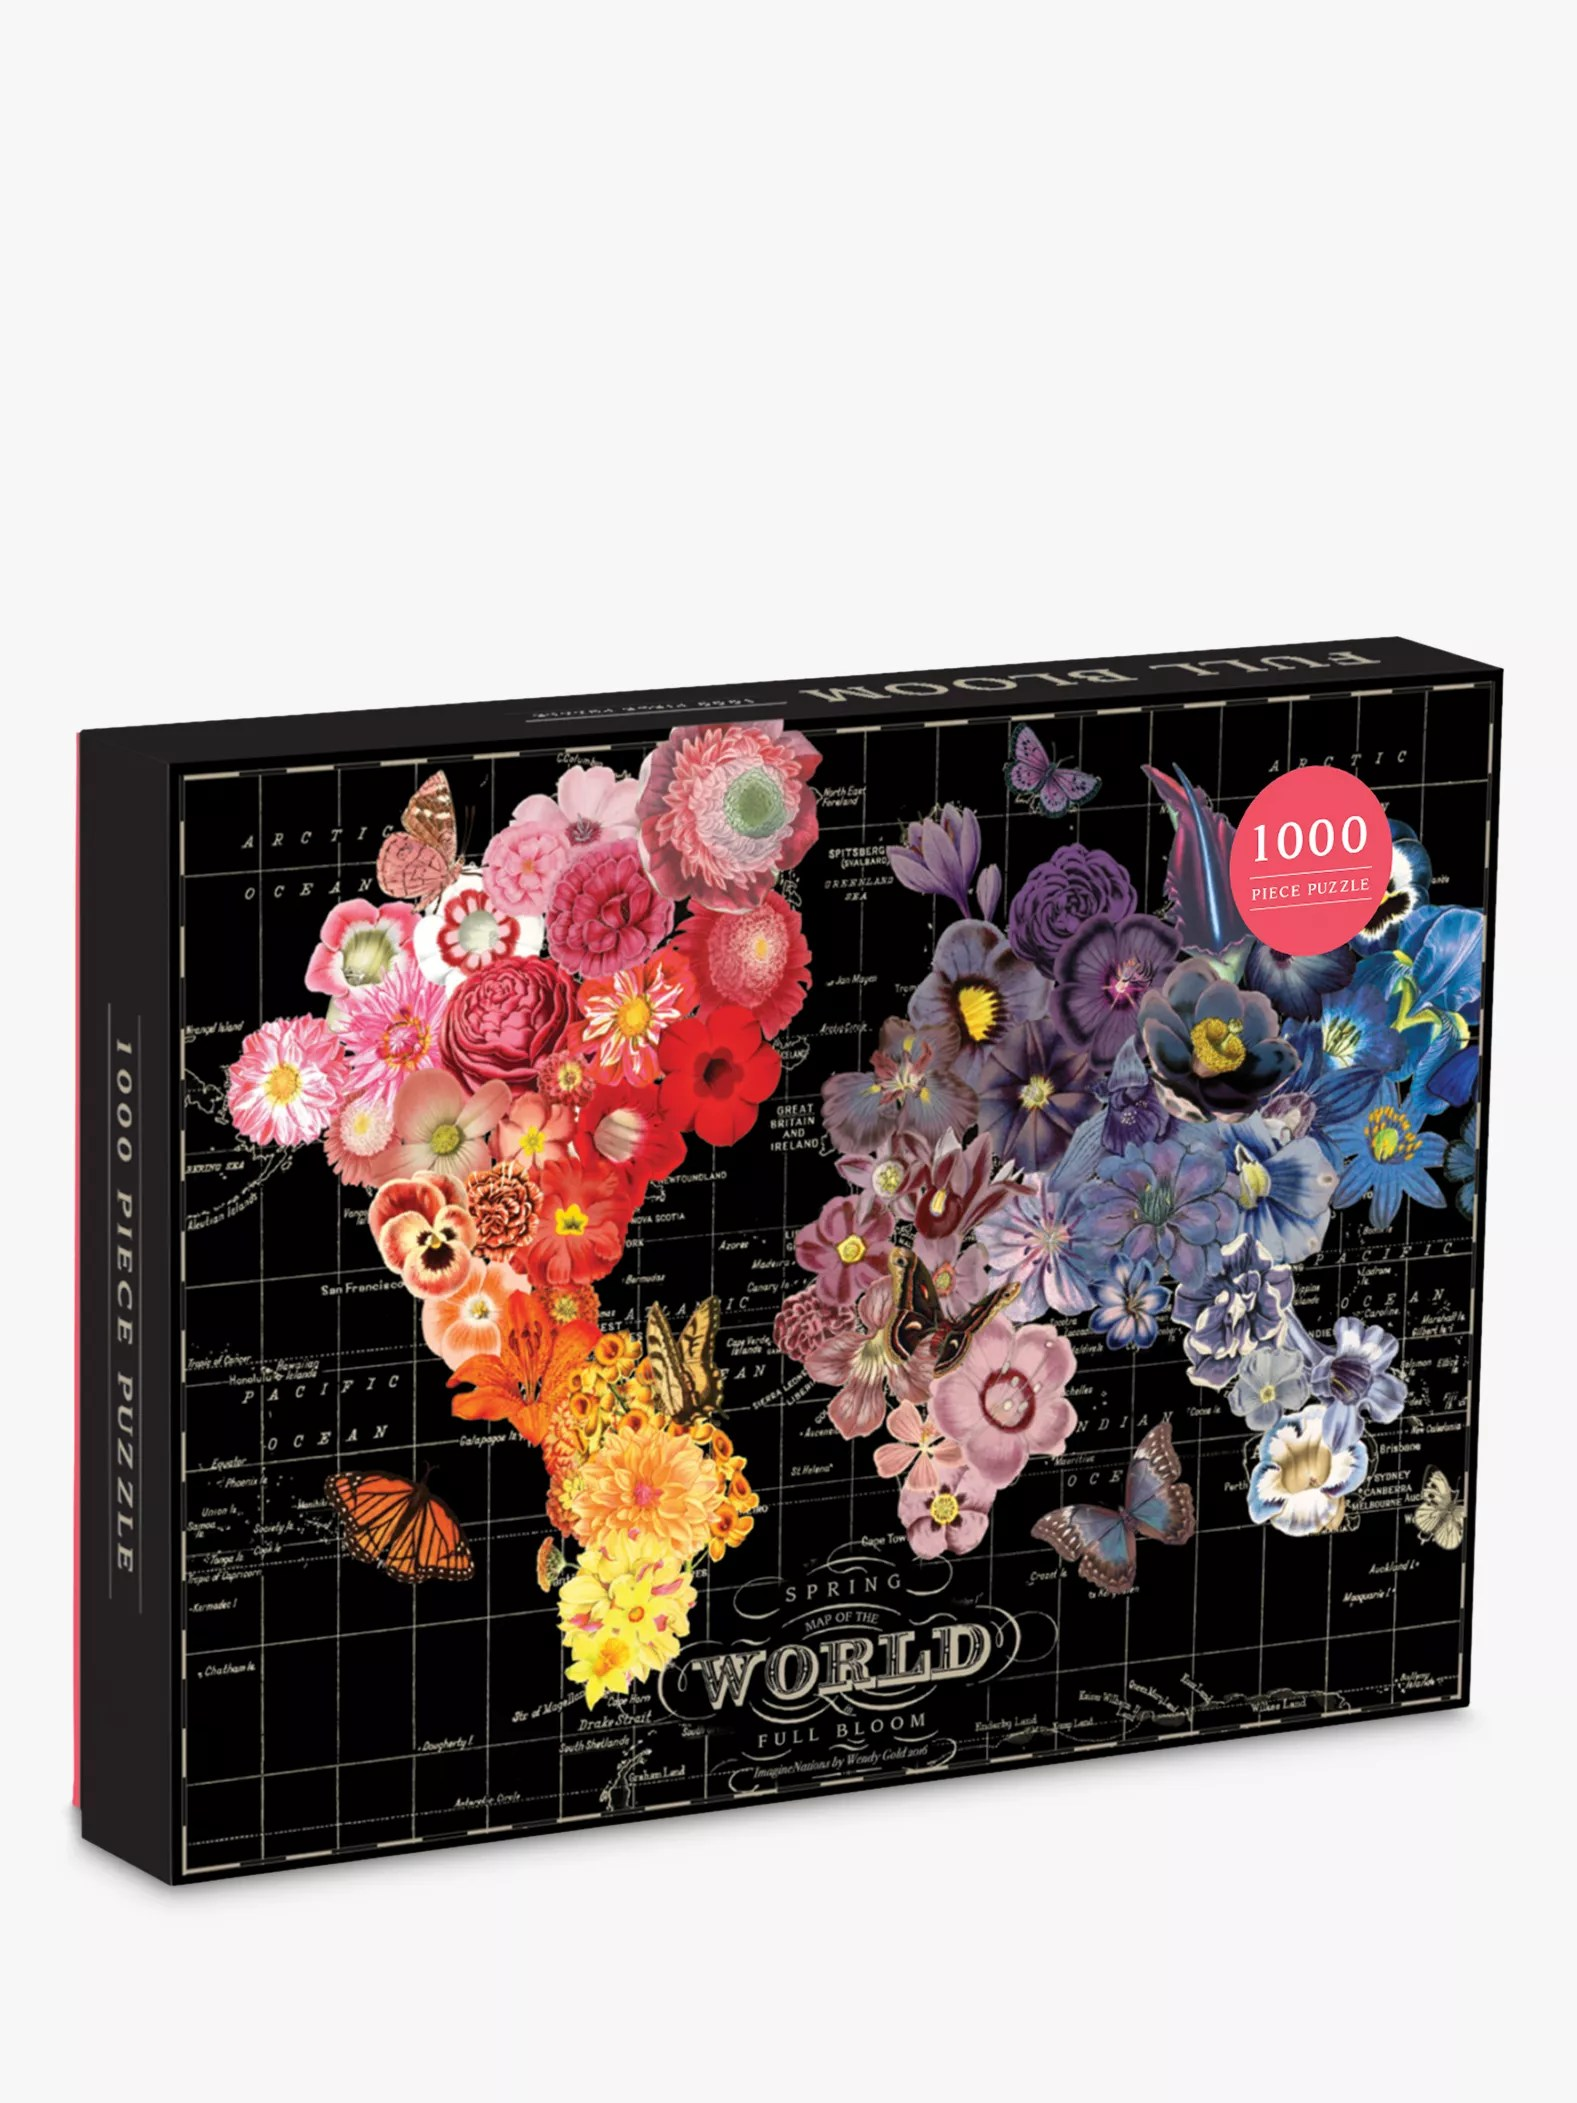 Puzzle Shop Brisbane Galison Full Bloom Map Jigsaw Puzzle 1000 Pieces At John Lewis